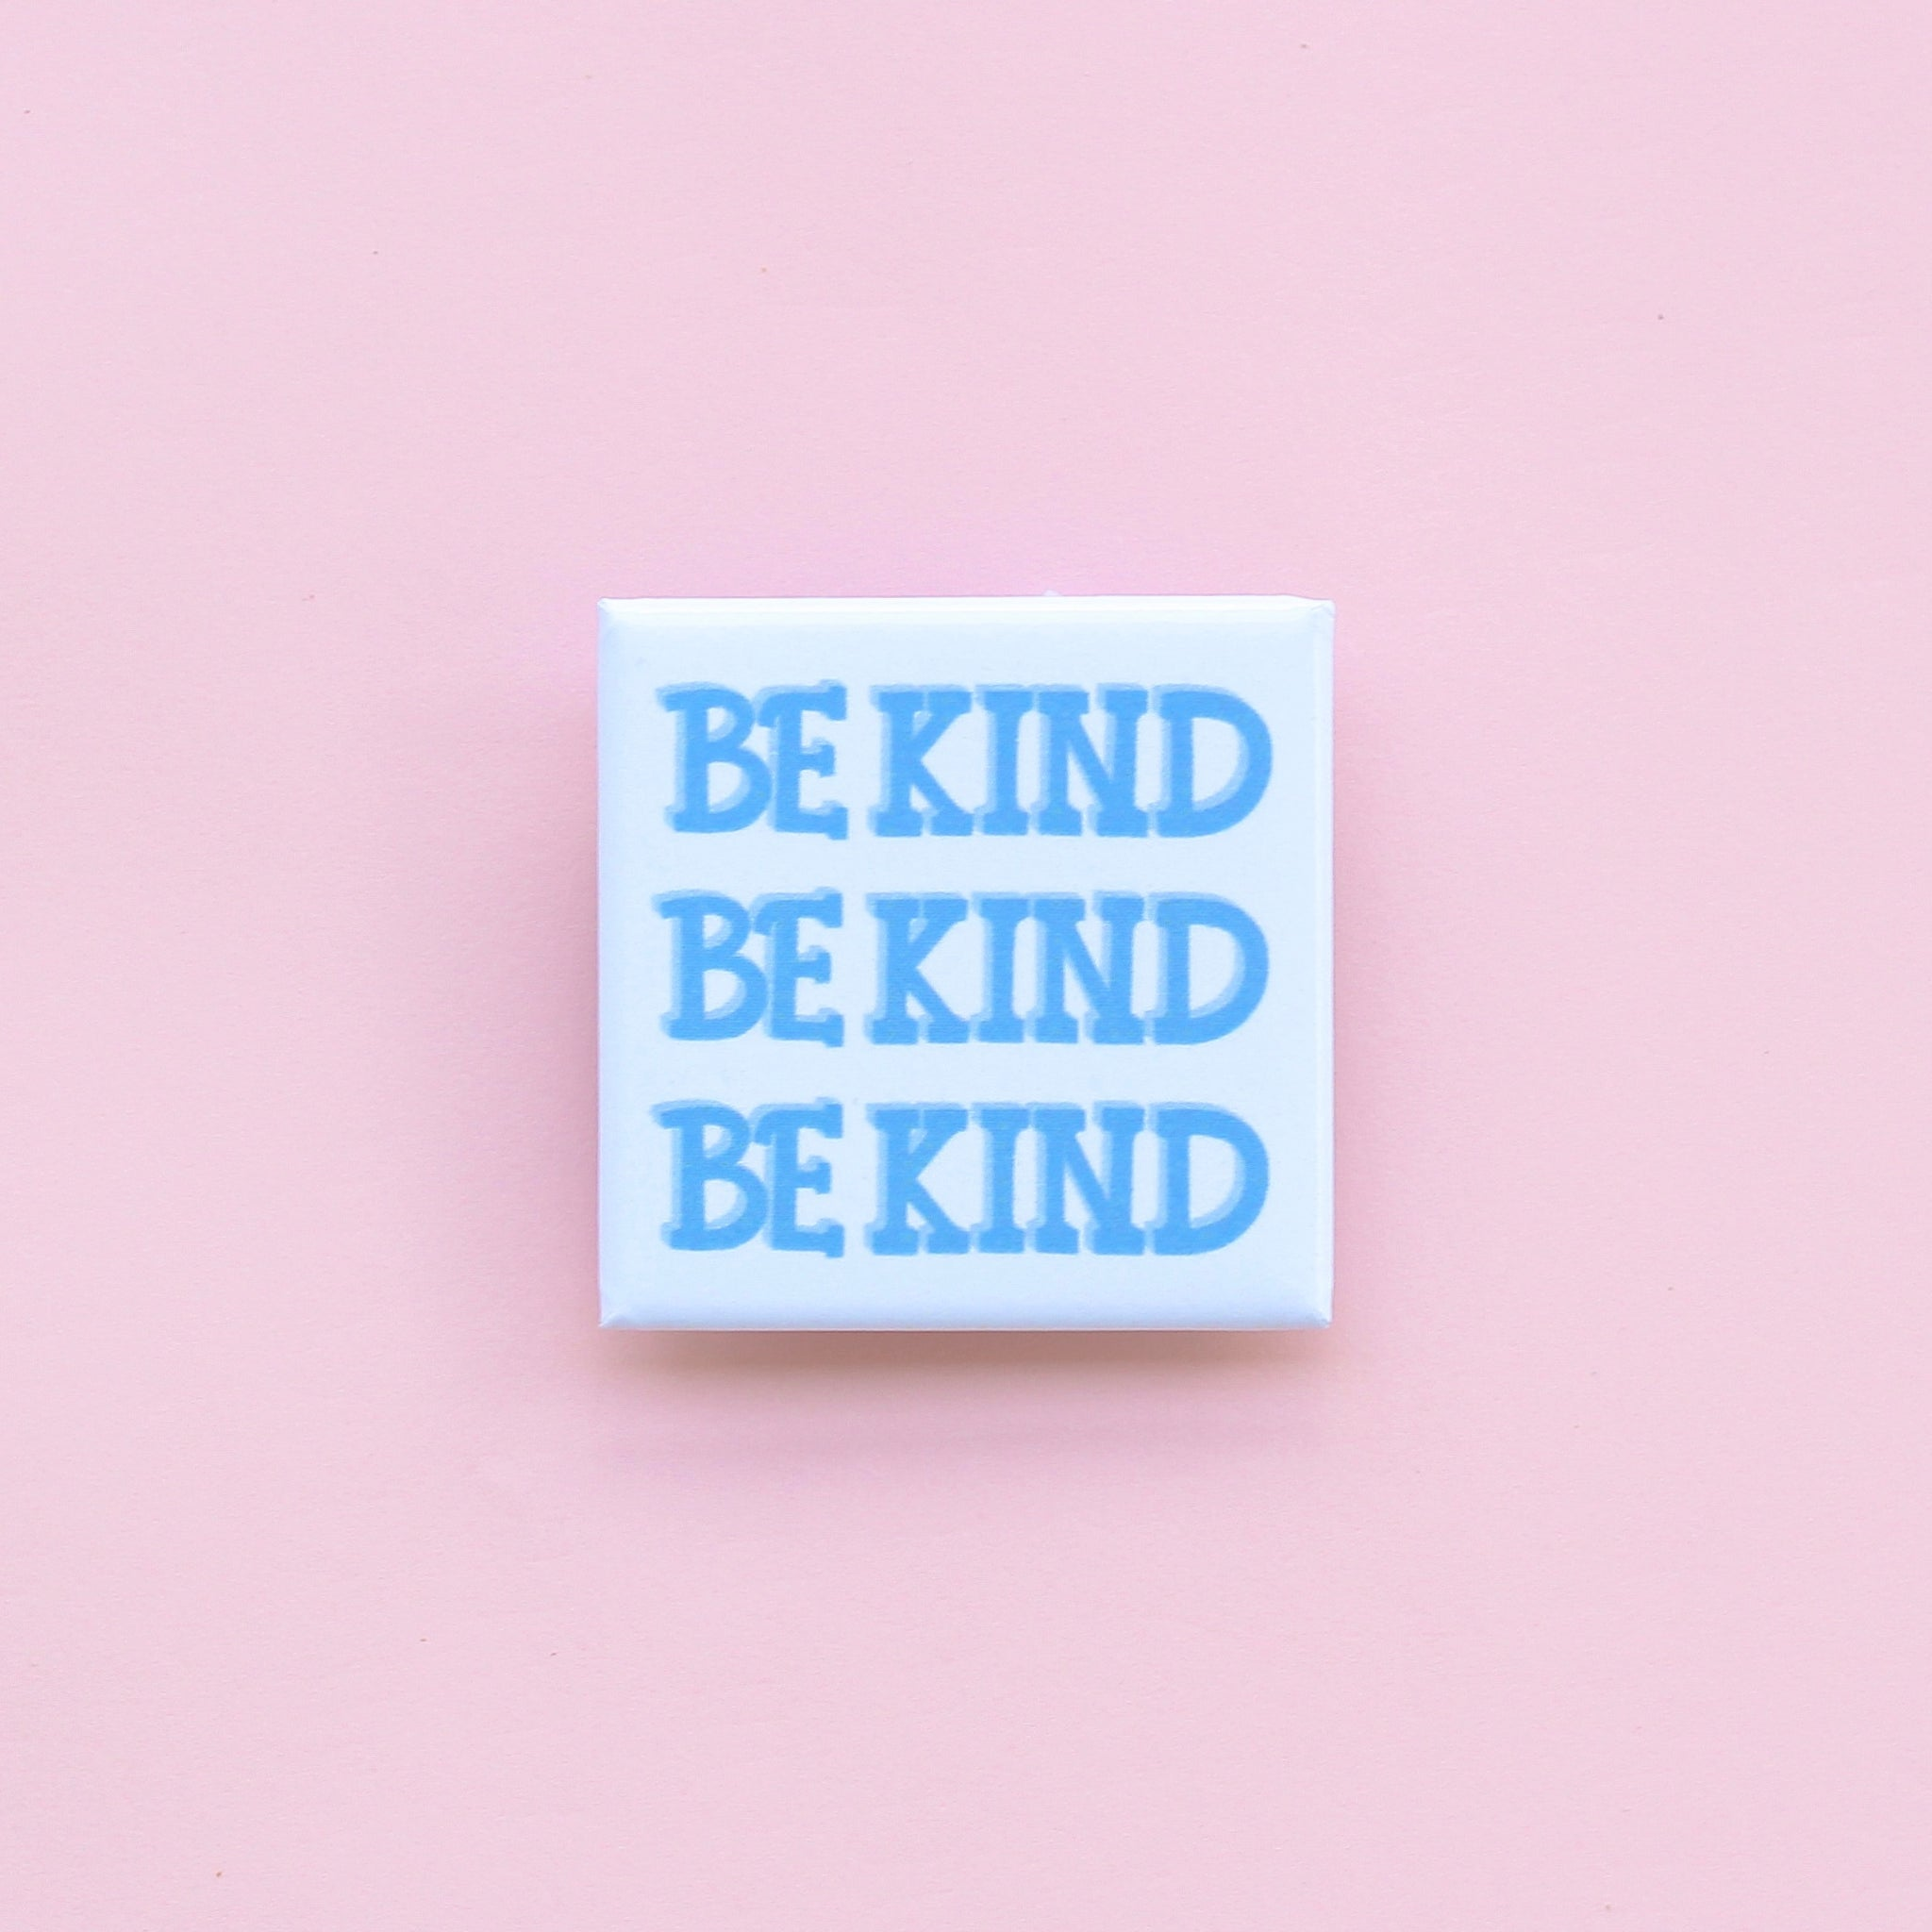 BE KIND SQUARE PIN